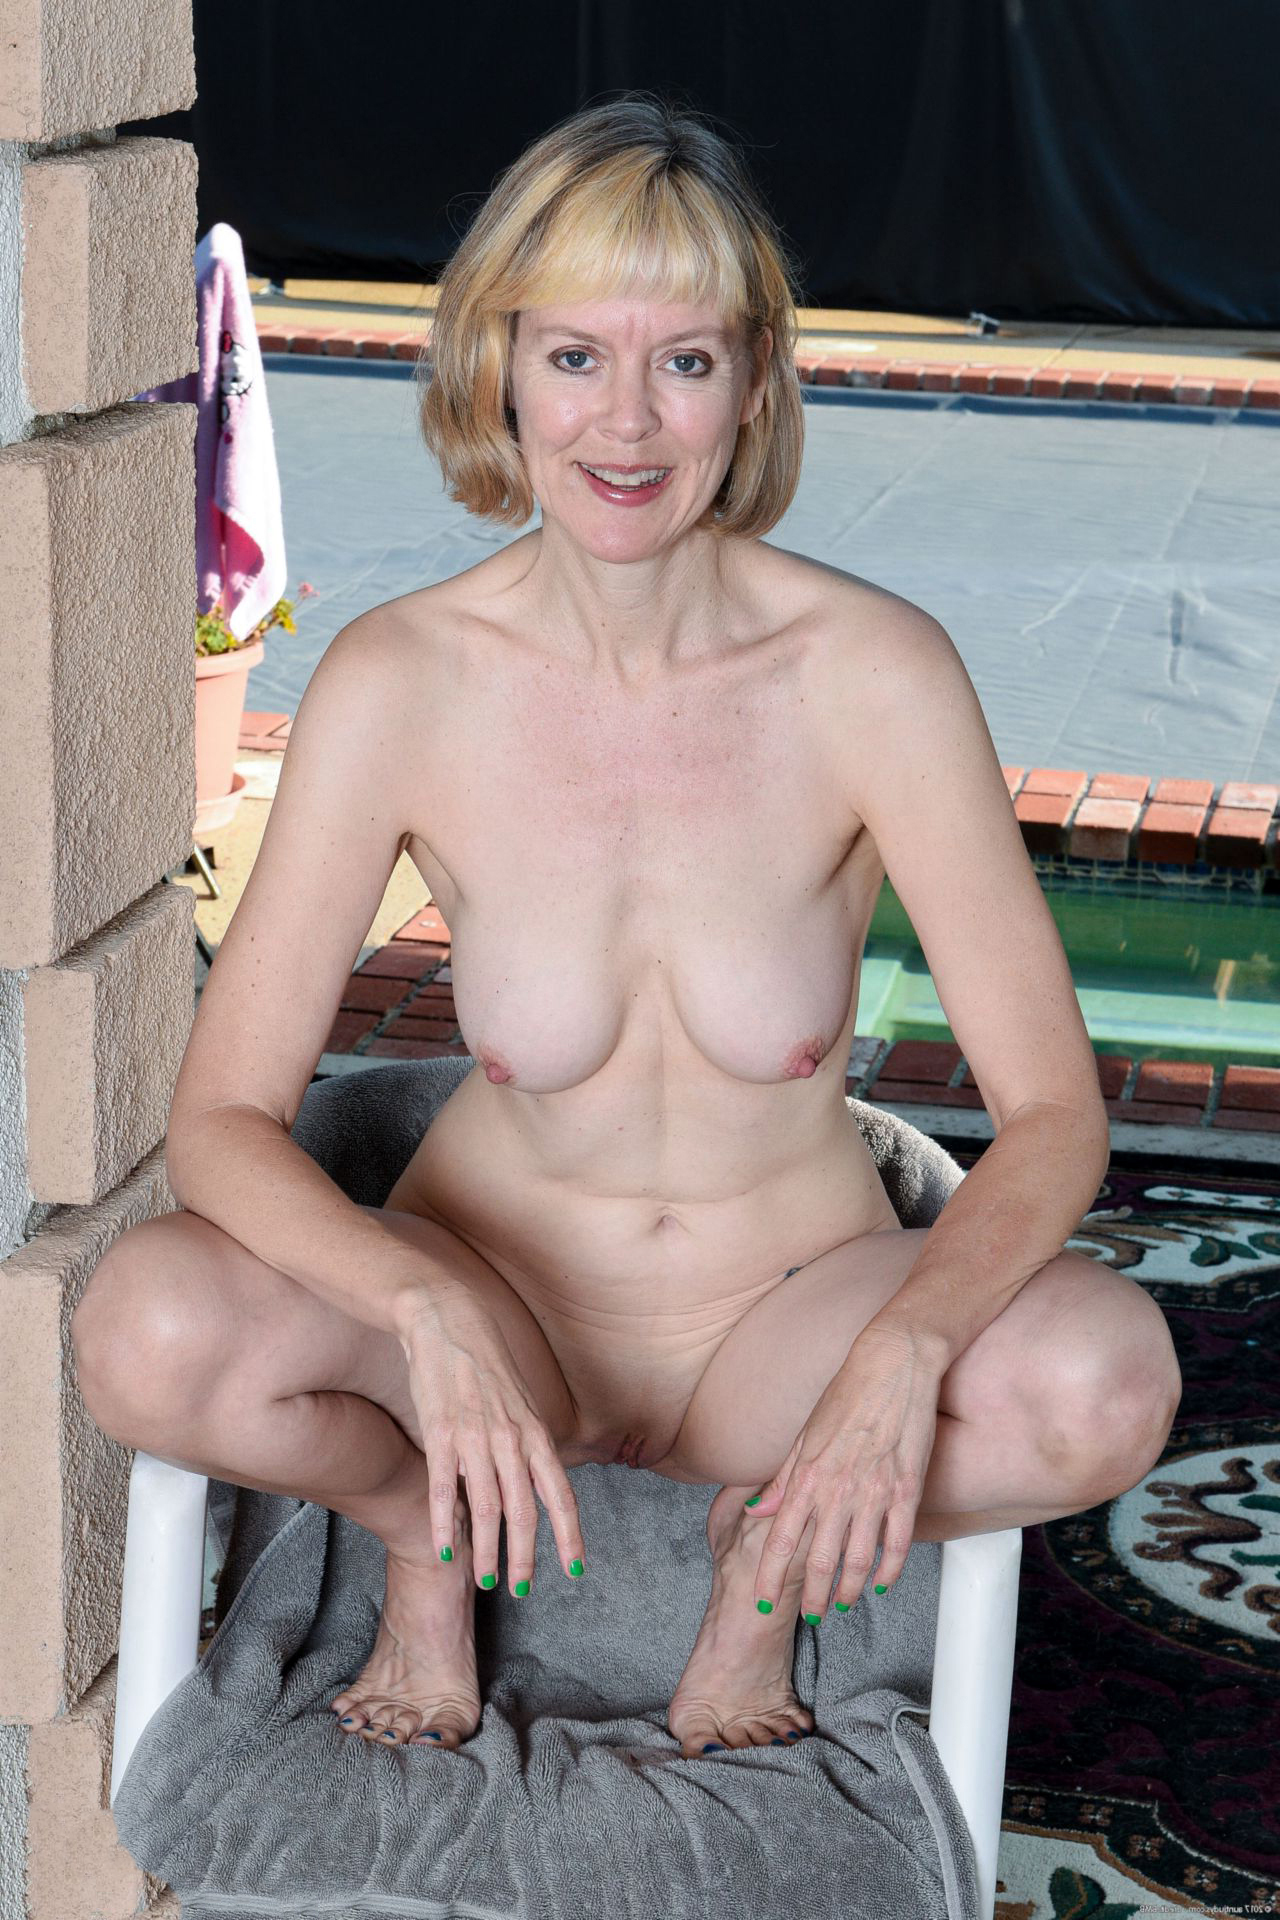 Pictures Of Naked Women Over 50